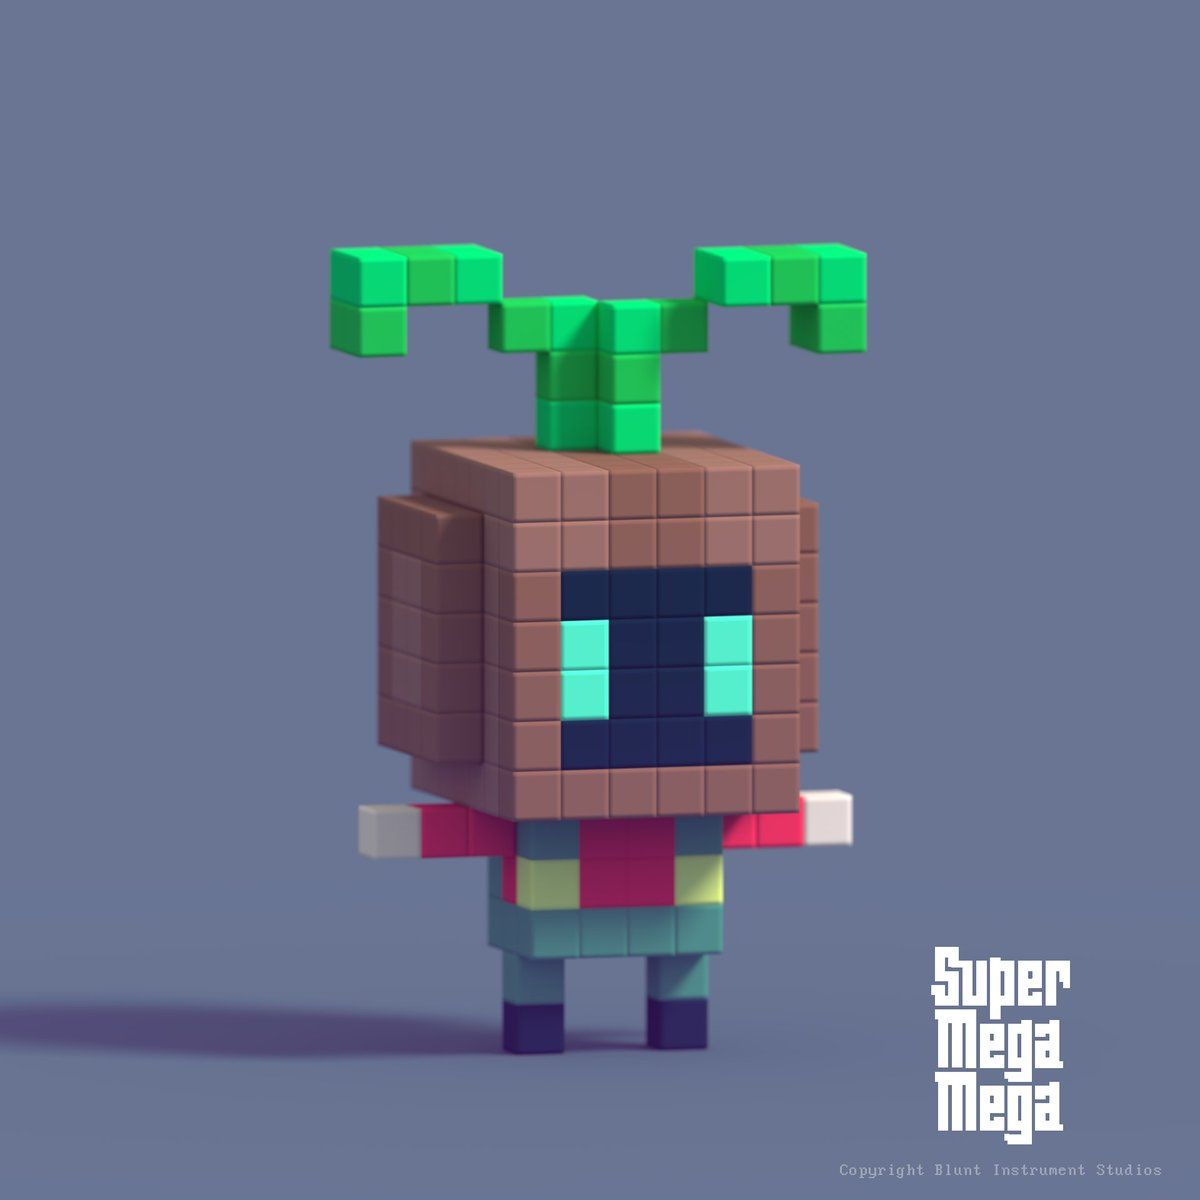 20+ Mr Doob Voxels Pixel Art Pictures and Ideas on Meta Networks